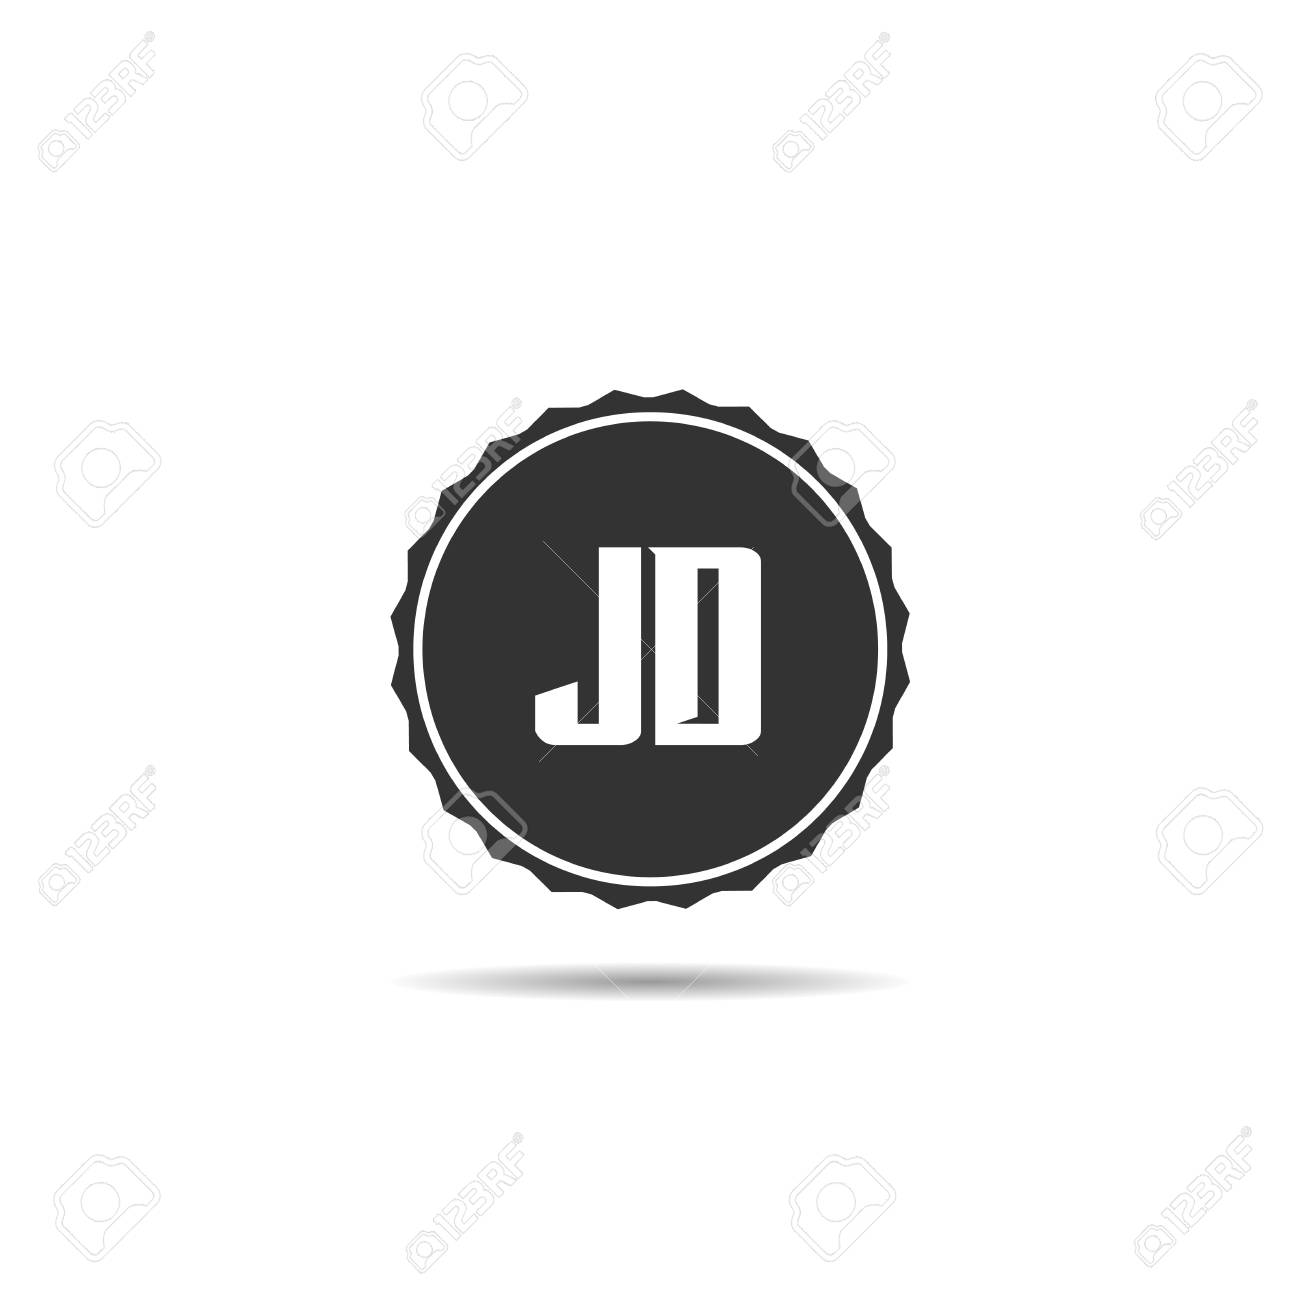 initial letter jd logo template design royalty free cliparts vectors and stock illustration image 109594857 initial letter jd logo template design